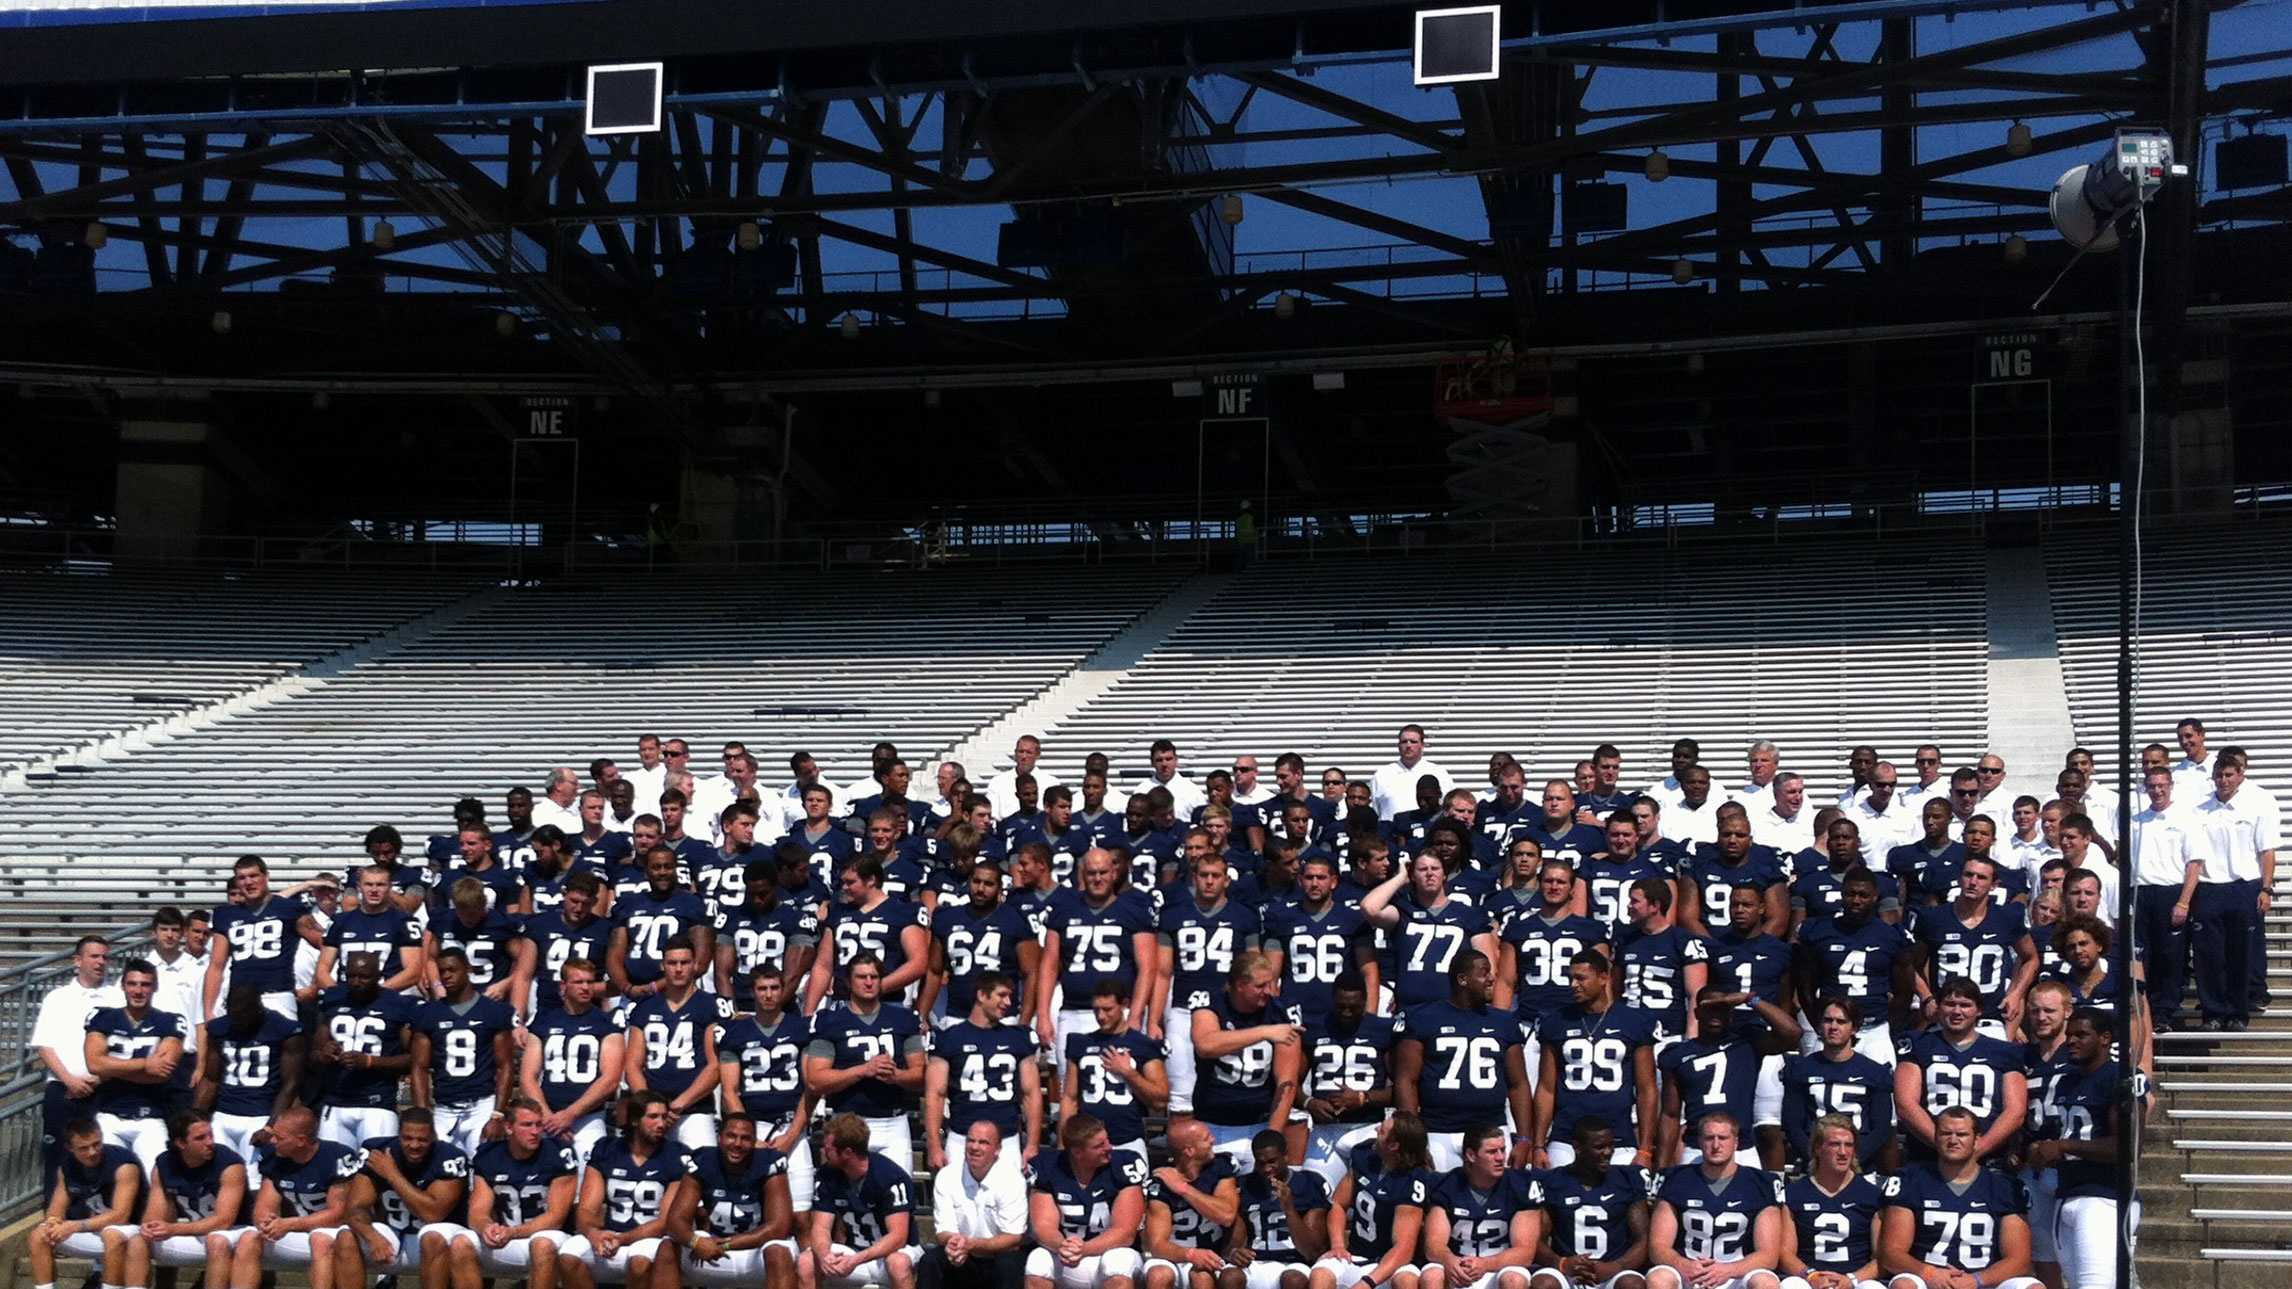 The Nittany Lions held their first media day in decades without Joe Paterno.